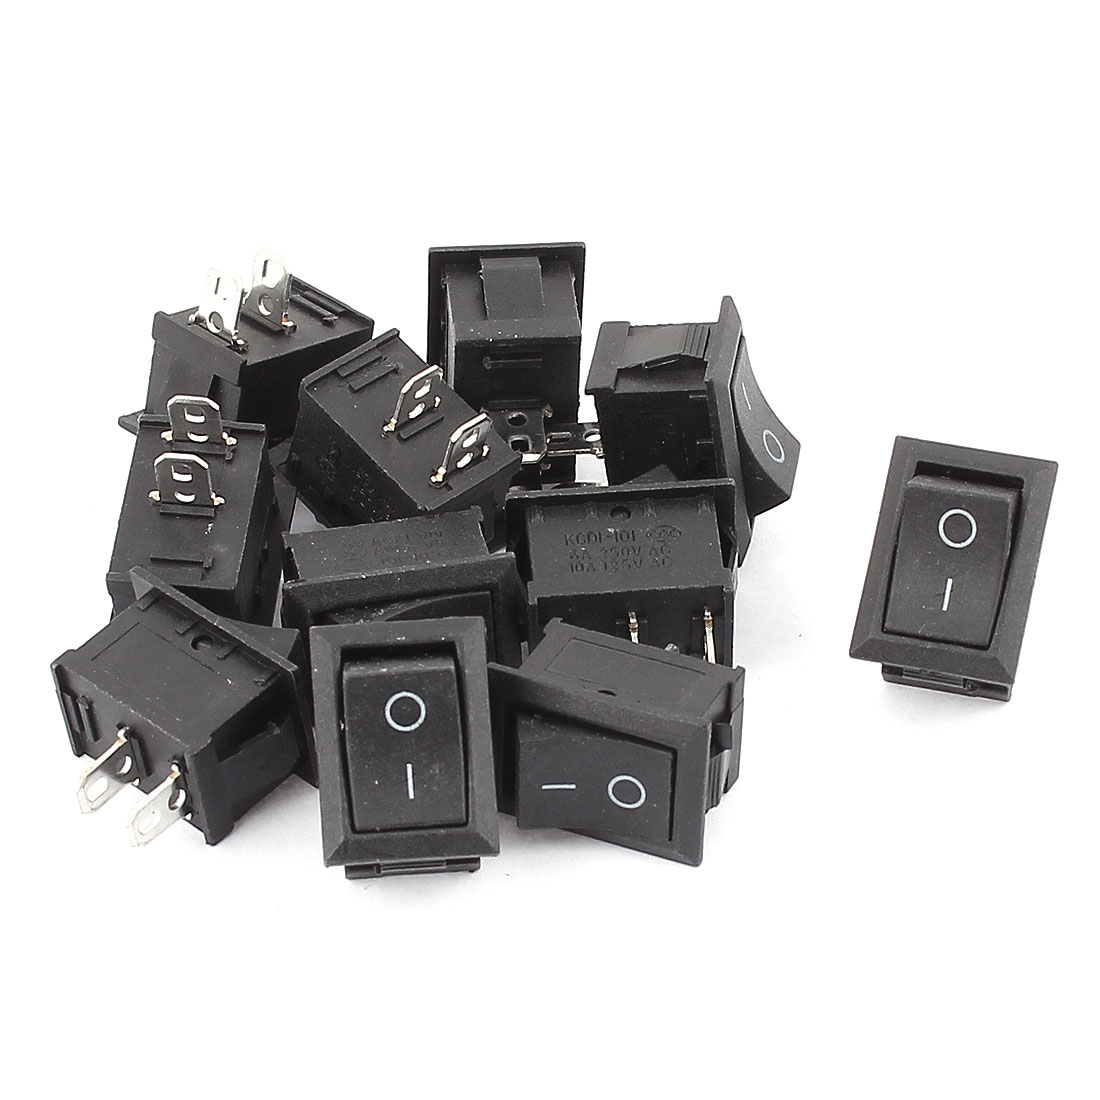 11 Pcs Two Position On-Off SPST Boat Rocker Switch AC 250V/6A 125V/10A